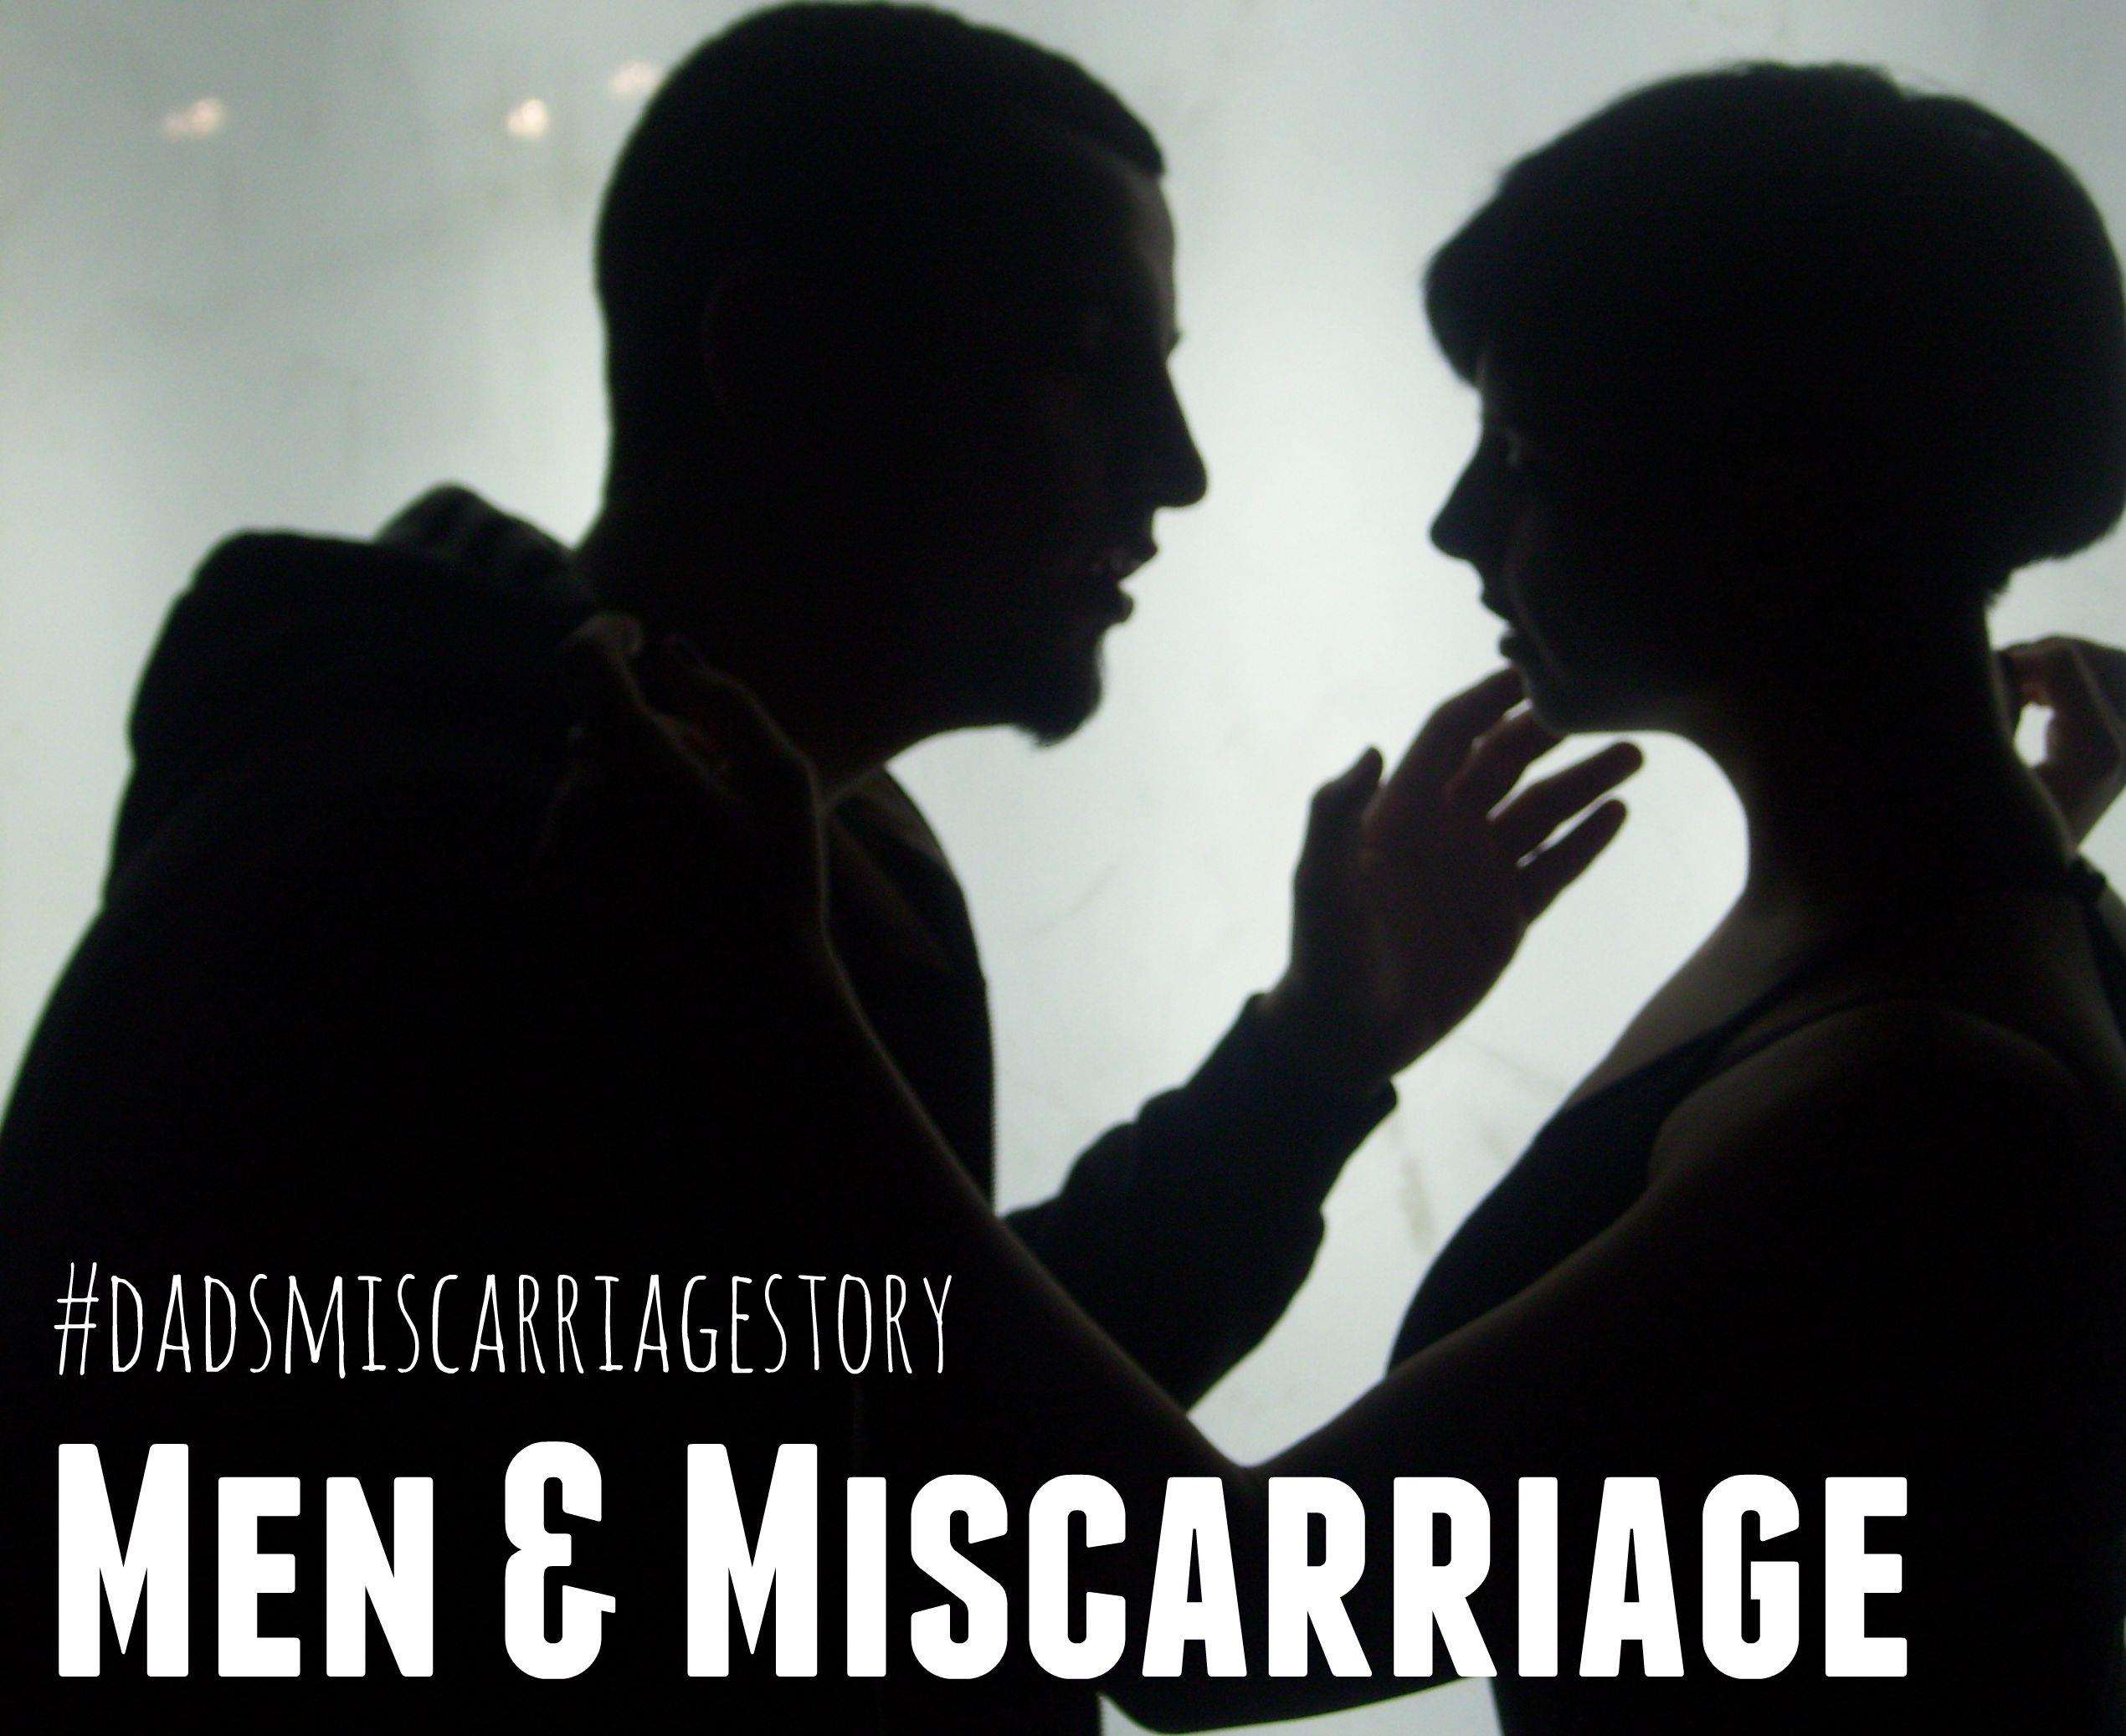 The Story of a Dad's Miscarriage, Men and Miscarriage 3%, miscarriage%